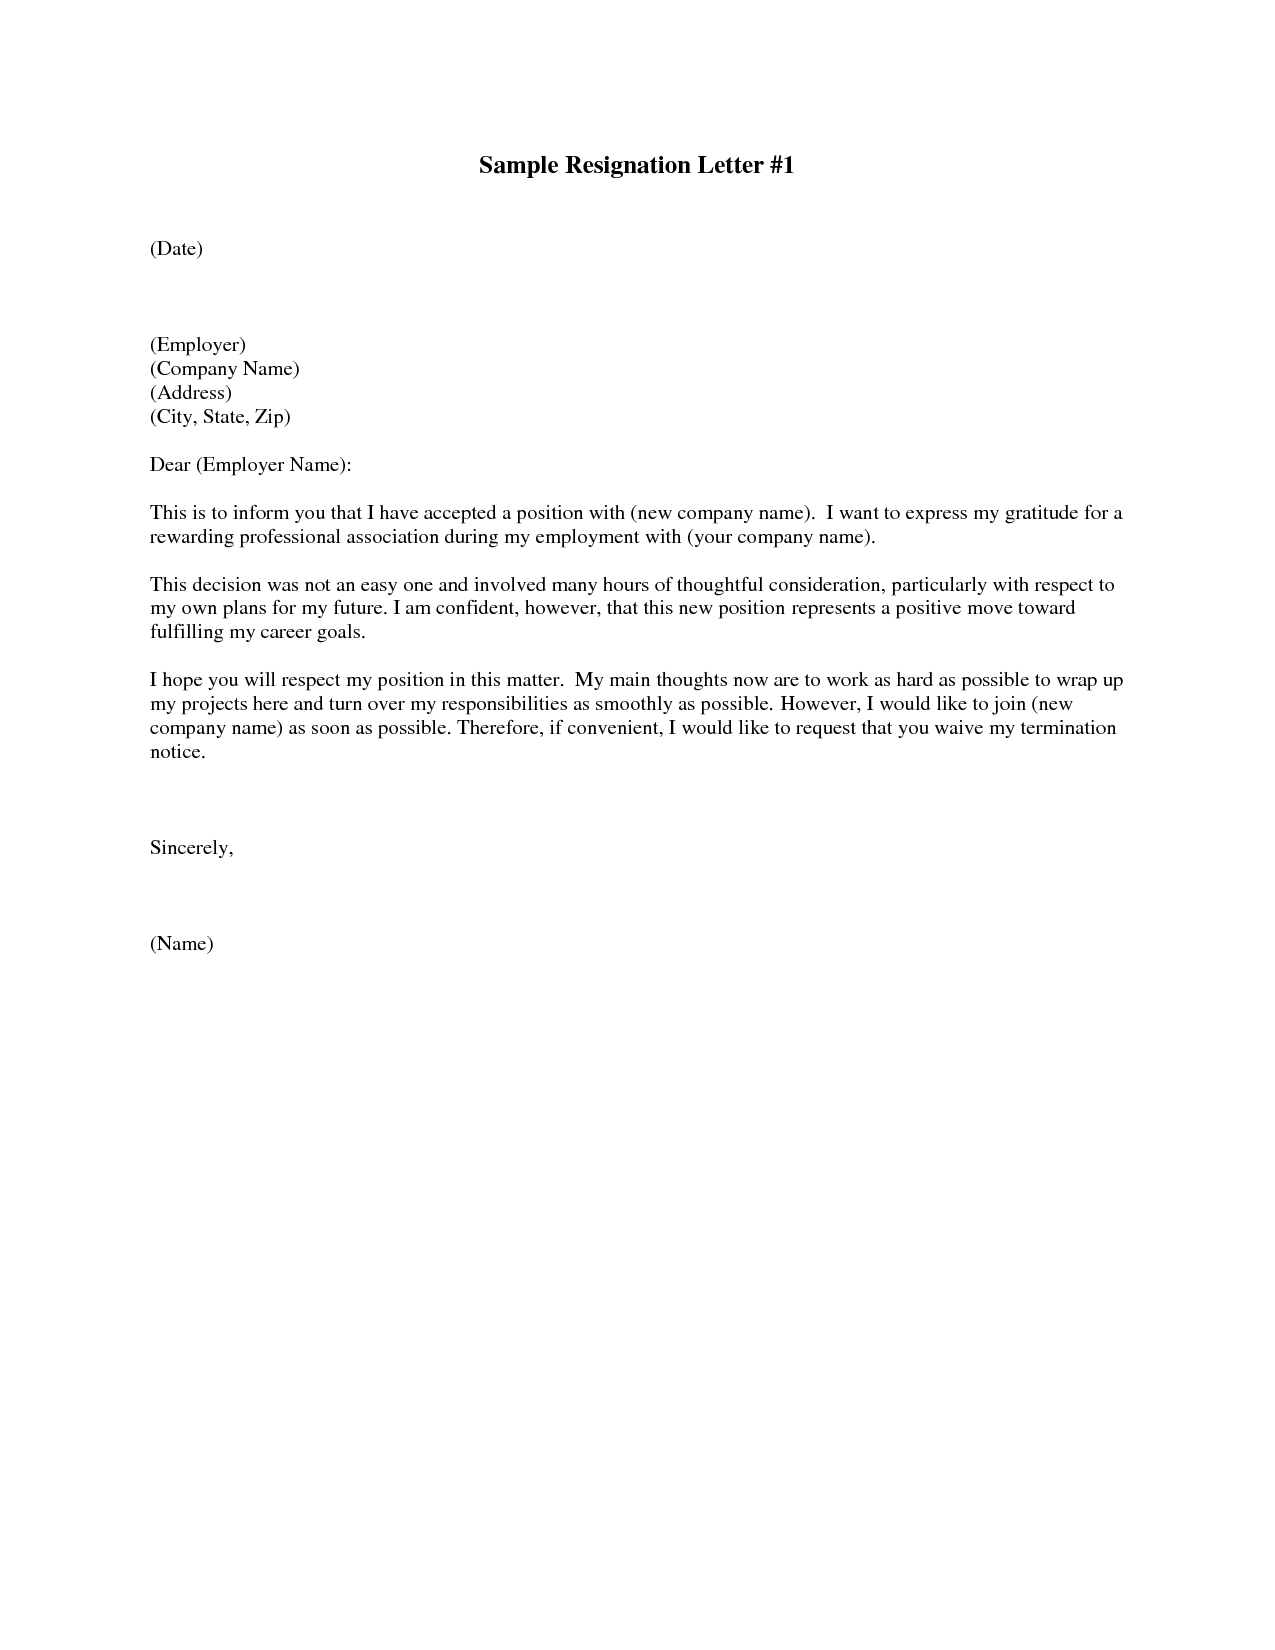 sample job resignation letter format pany profile template easy